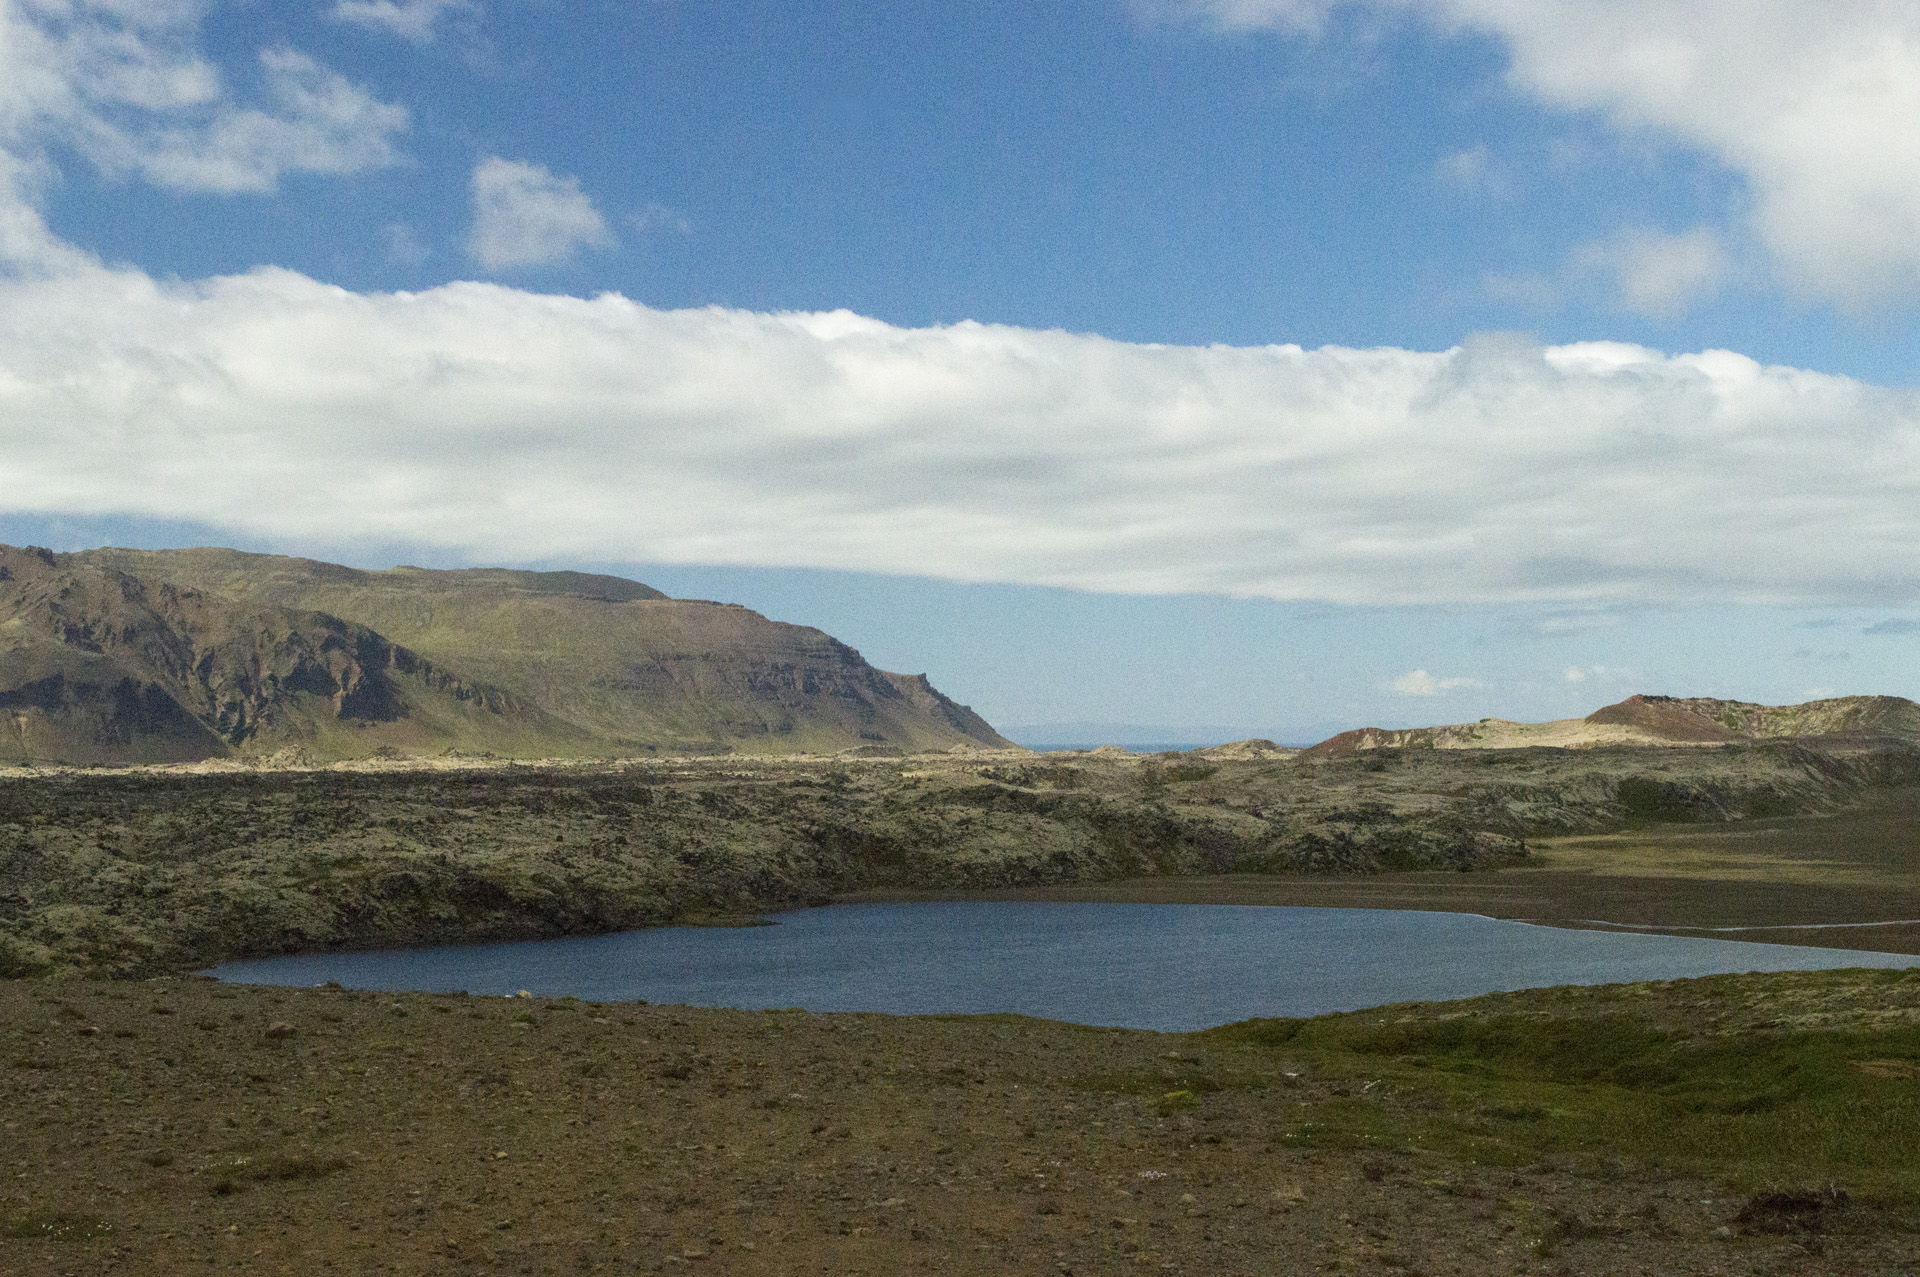 Selvallavatn lake in front of some of the mountains on the north side of the Snæfellsnes peninsula, Vesturland region, Iceland.